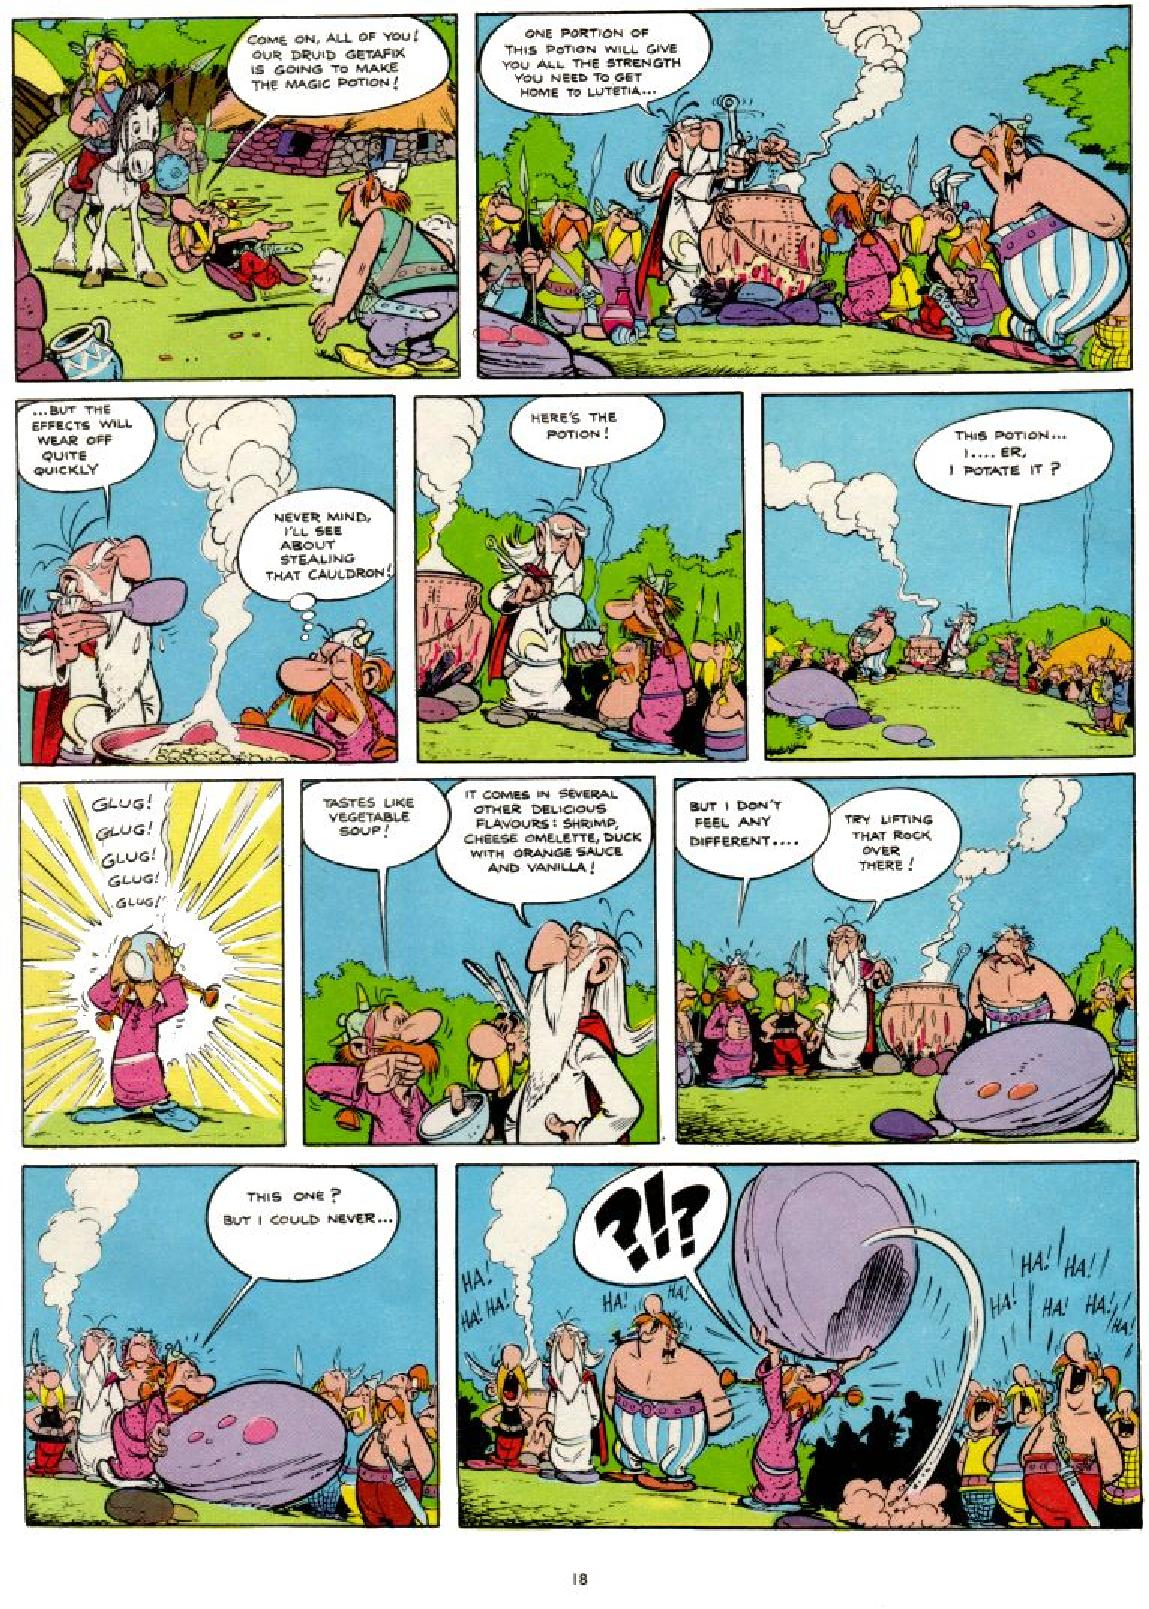 Read online Asterix comic -  Issue #1 - 18